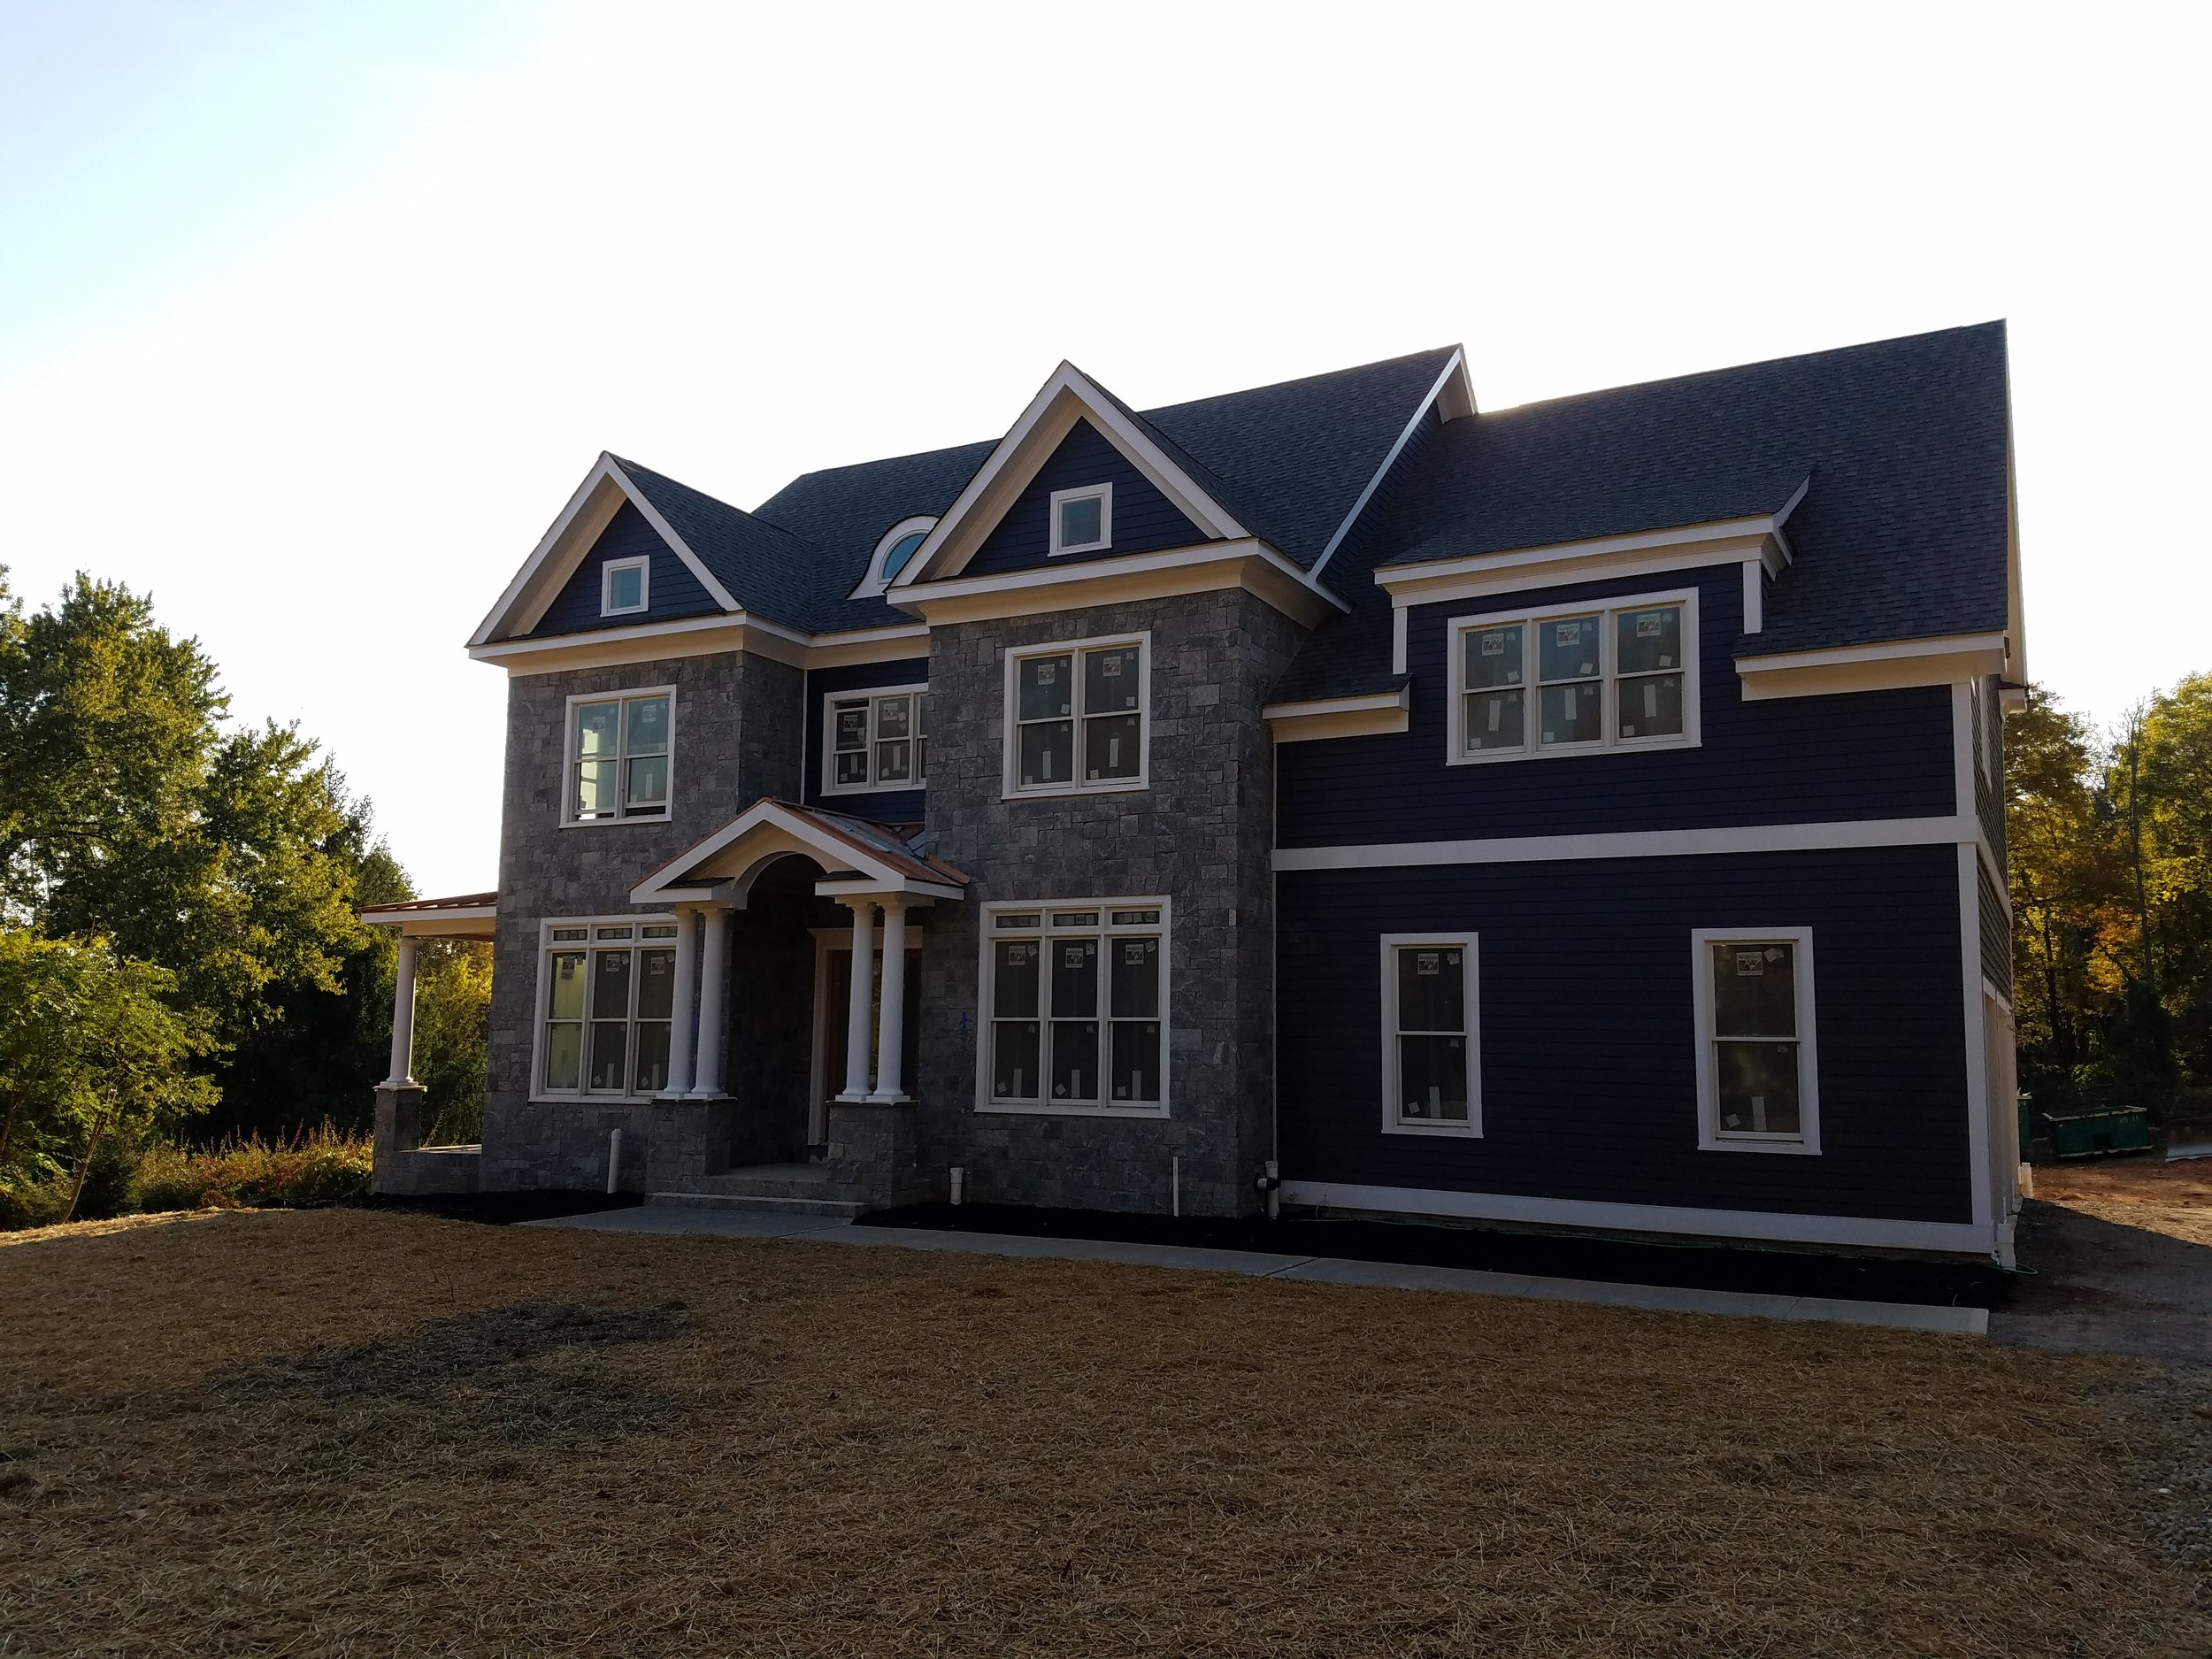 MENDHAM HOME   TYPE: SINGLE FAMILY NEW CONSTRUCTION  YEAR: 2016 (in progress)  LOCATION: New jersey  size: 5,000 sf